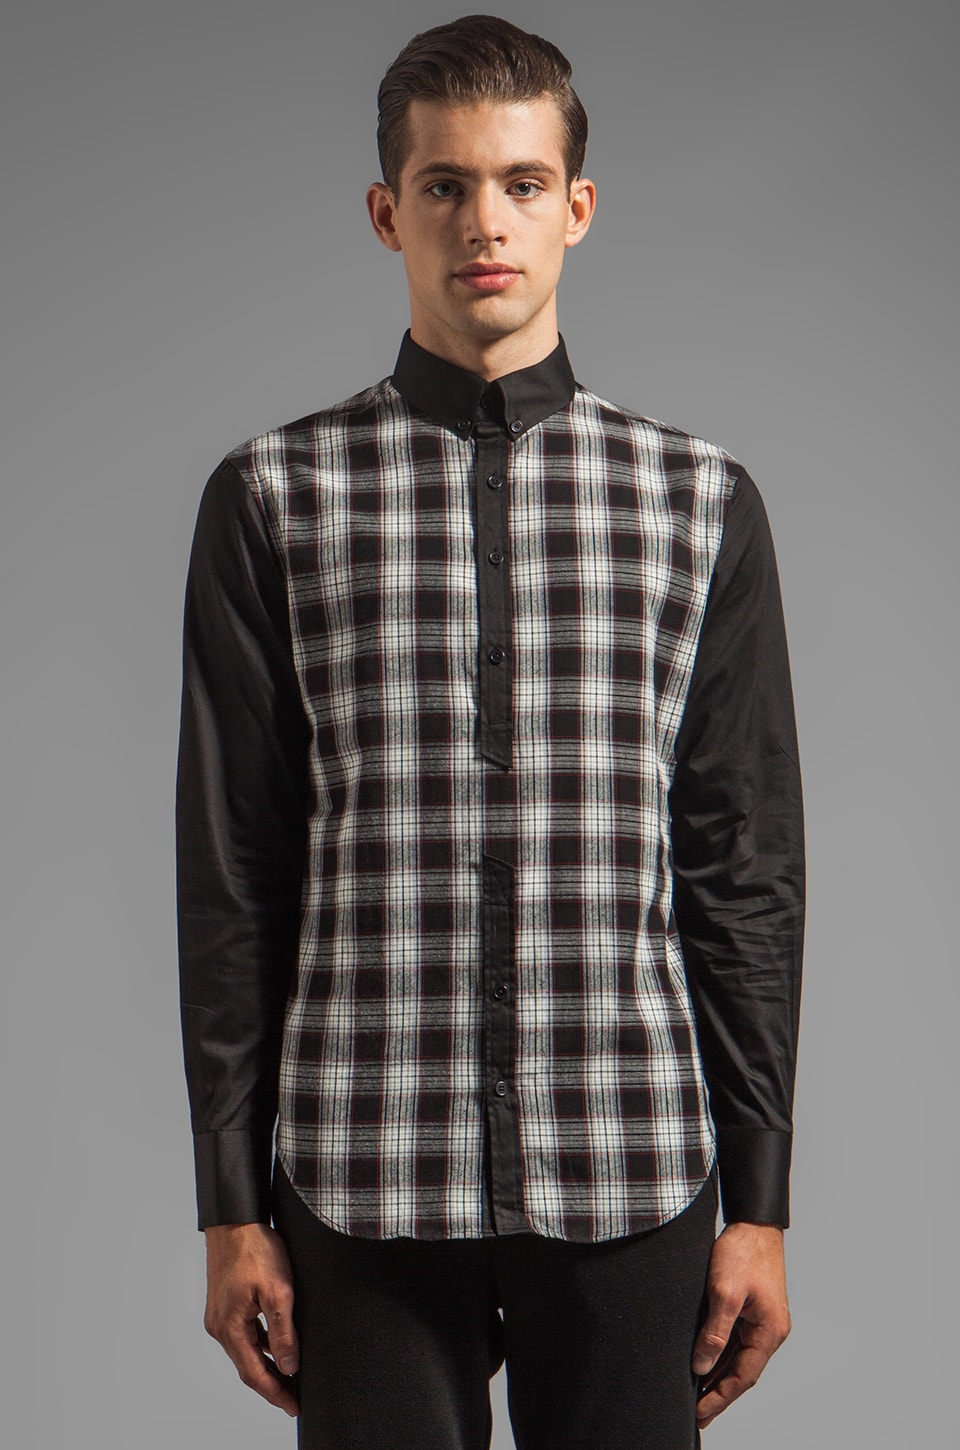 Munsoo Kwon Broken Contrast Shirt in Black Check